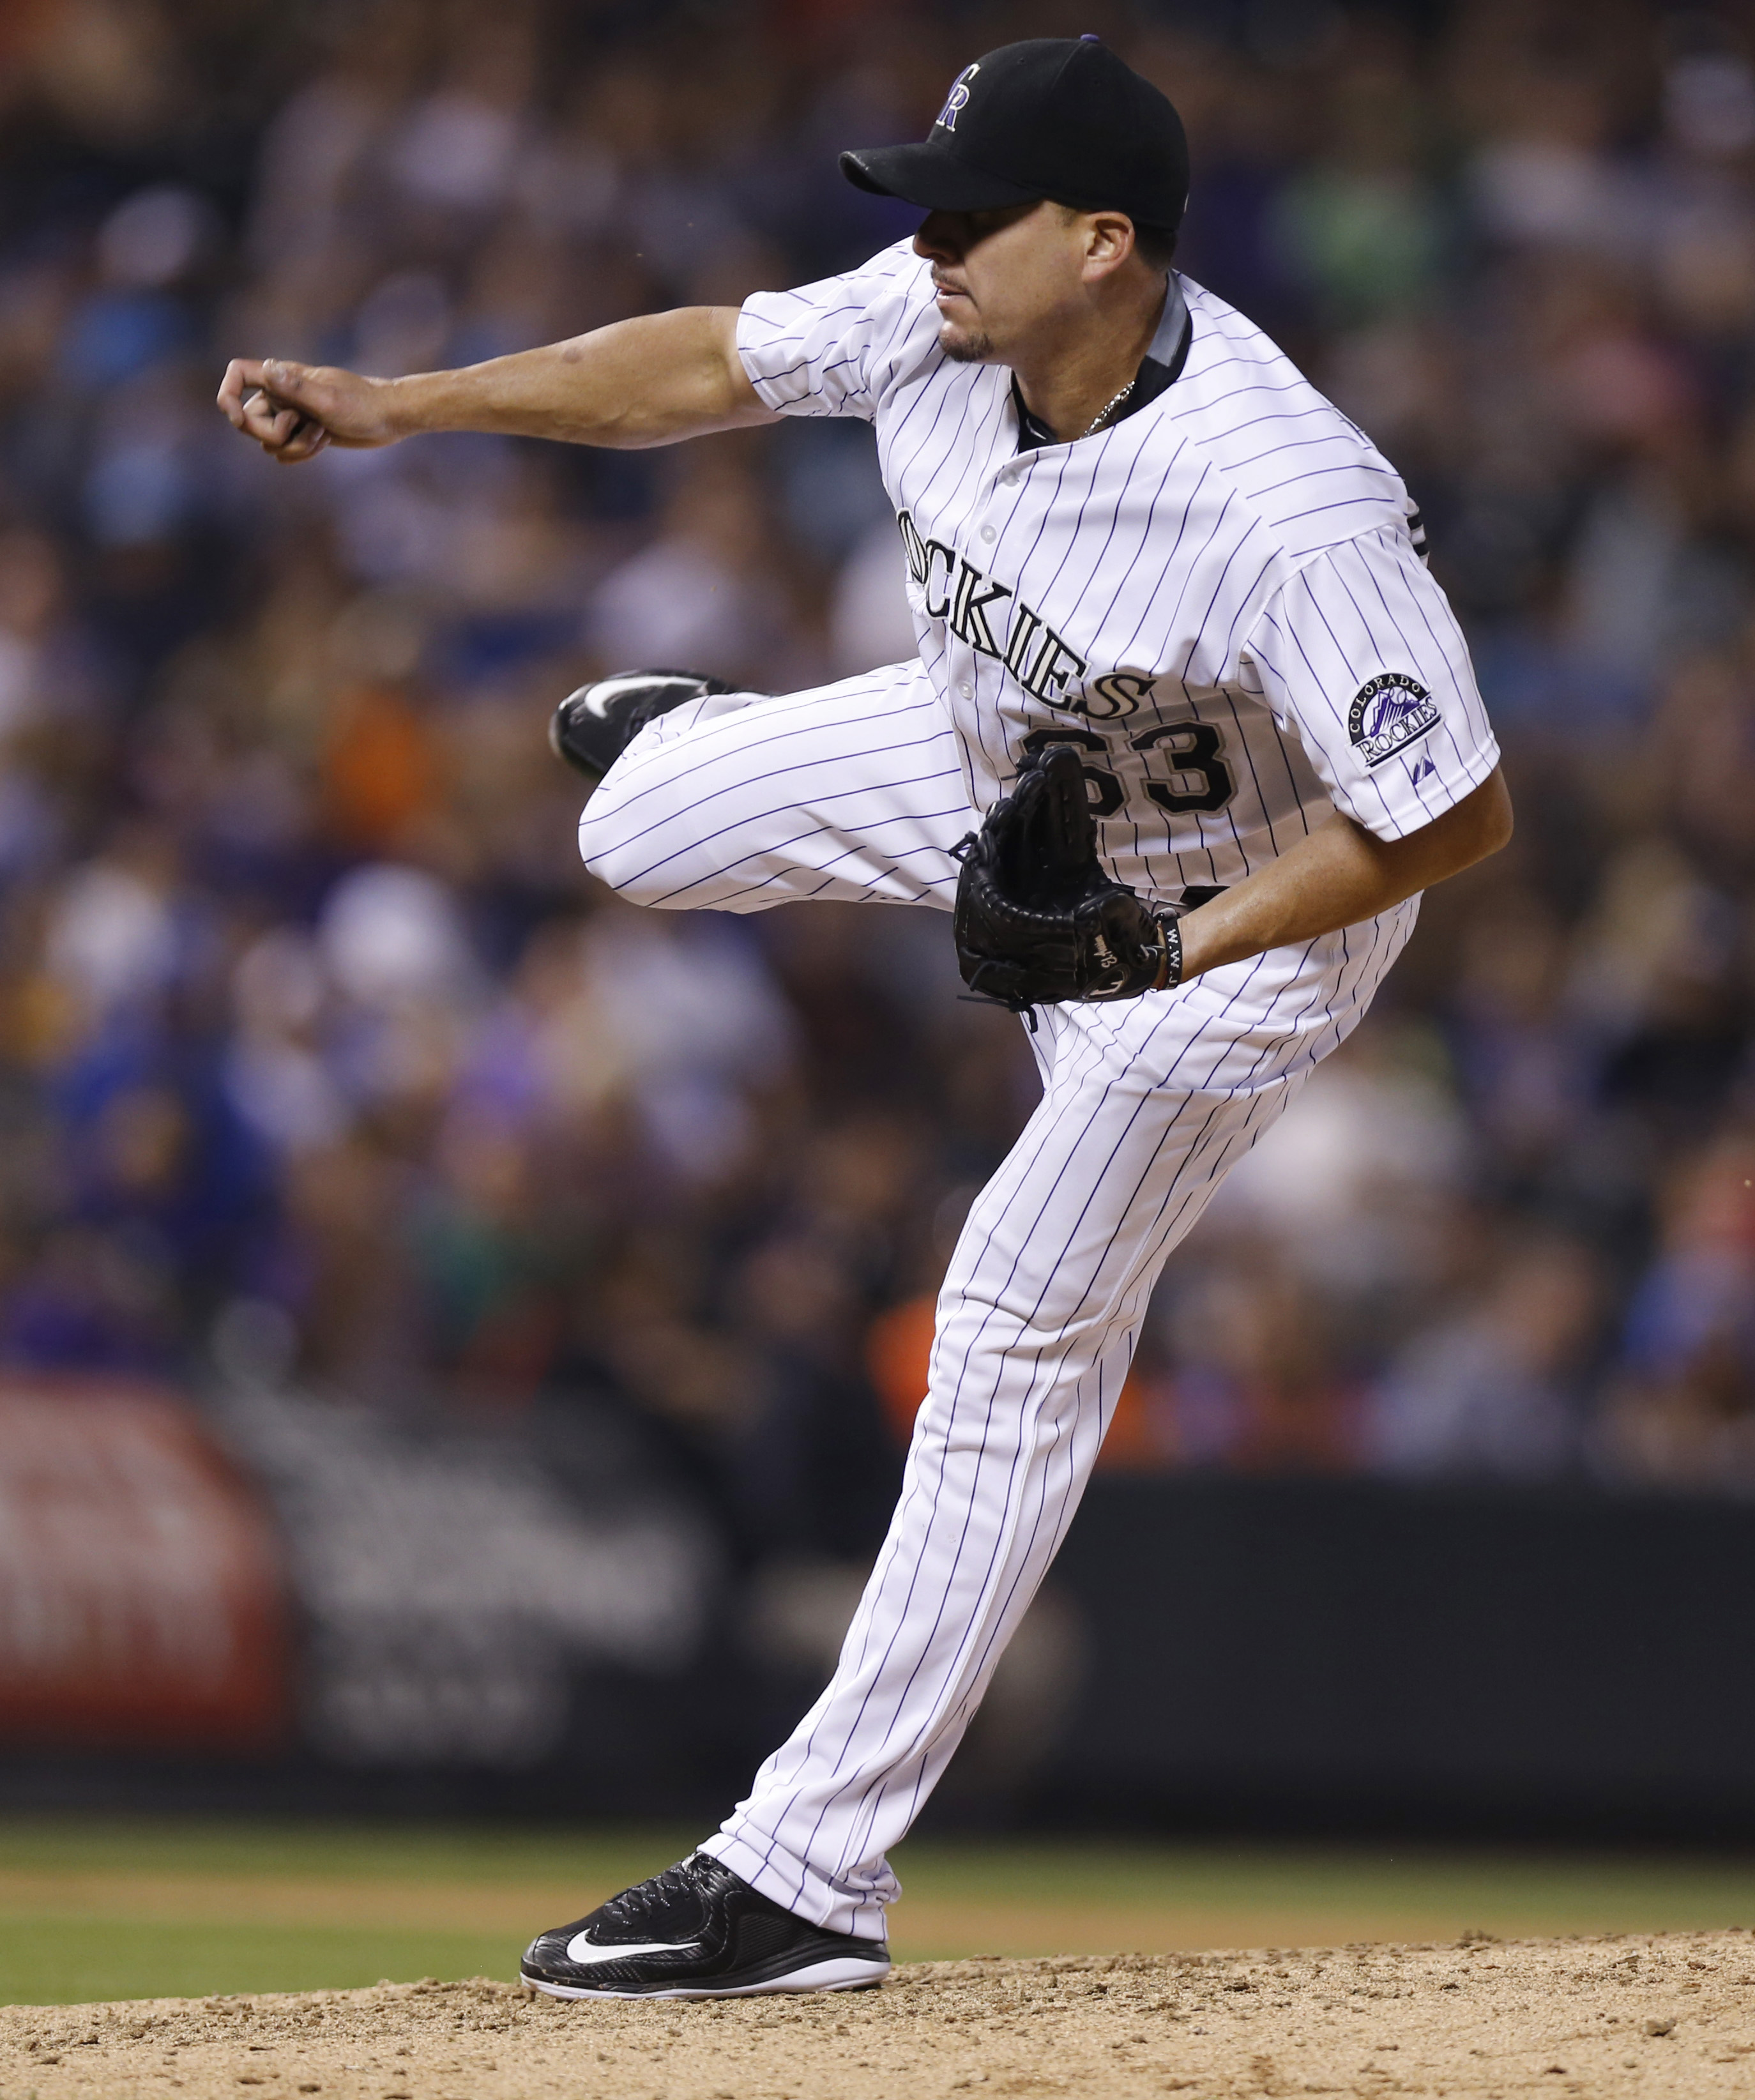 In this Saturday, Aug. 22, 2015, photo, Colorado Rockies relief pitcher Rafael Betancourt works against the New York Mets during the seventh inning of a baseball game in Denver. Betancourt was designated for assignment Sunday, Aug. 23. (AP Photo/David Zal